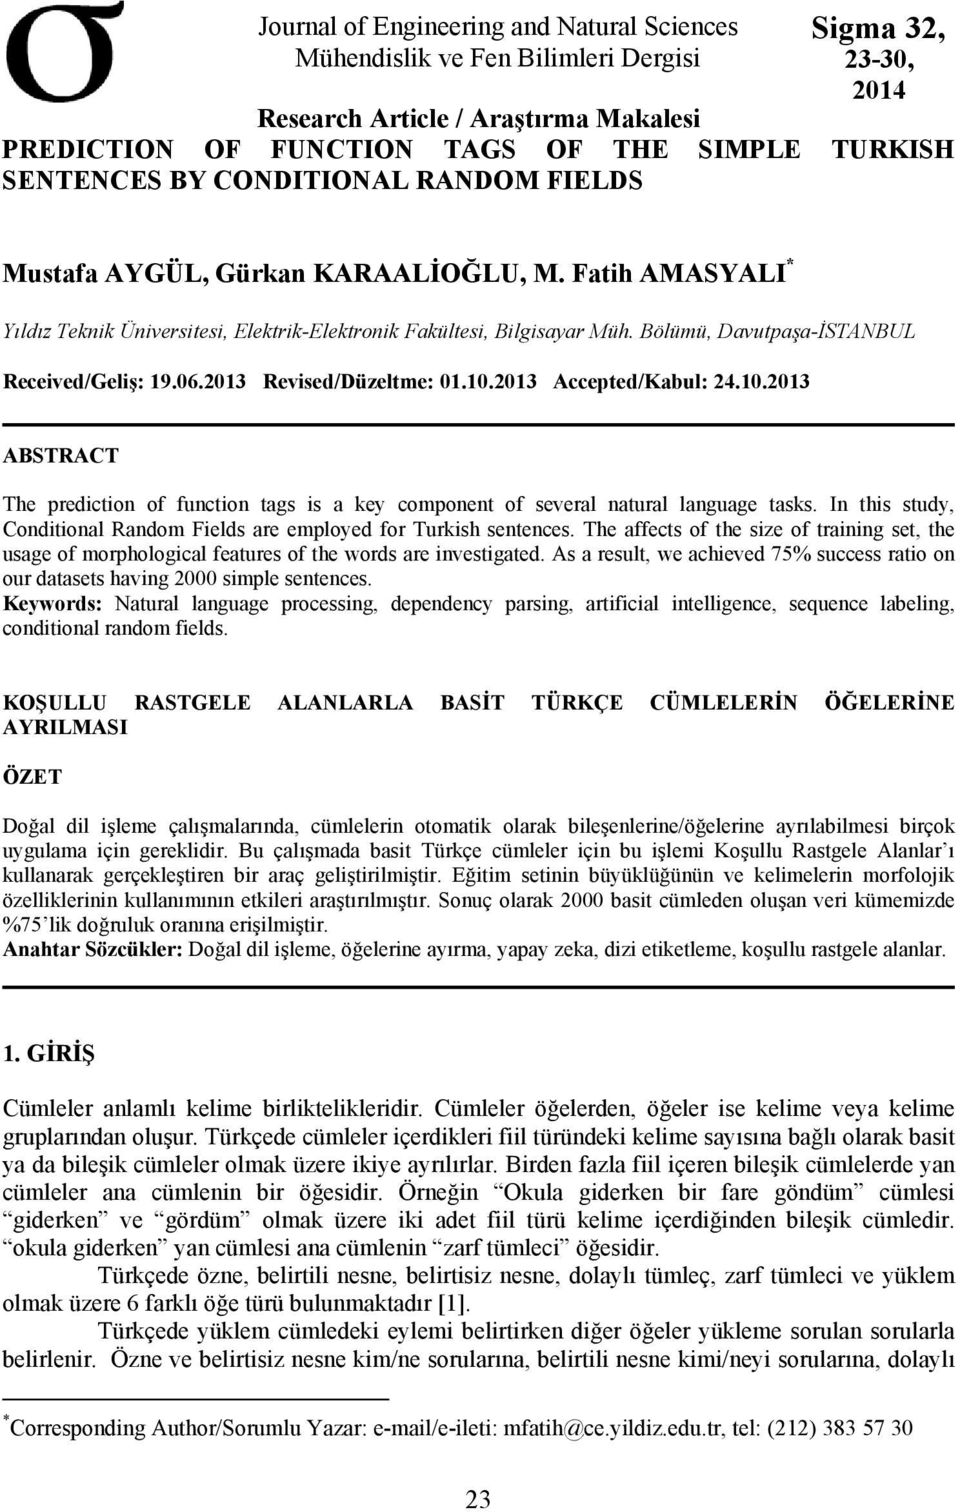 Bölümü, Davutpaşa-İSTANBUL Received/Geliş: 19.06.2013 Revised/Düzeltme: 01.10.2013 Accepted/Kabul: 24.10.2013 ABSTRACT The prediction of function tags is a key component of several natural language tasks.